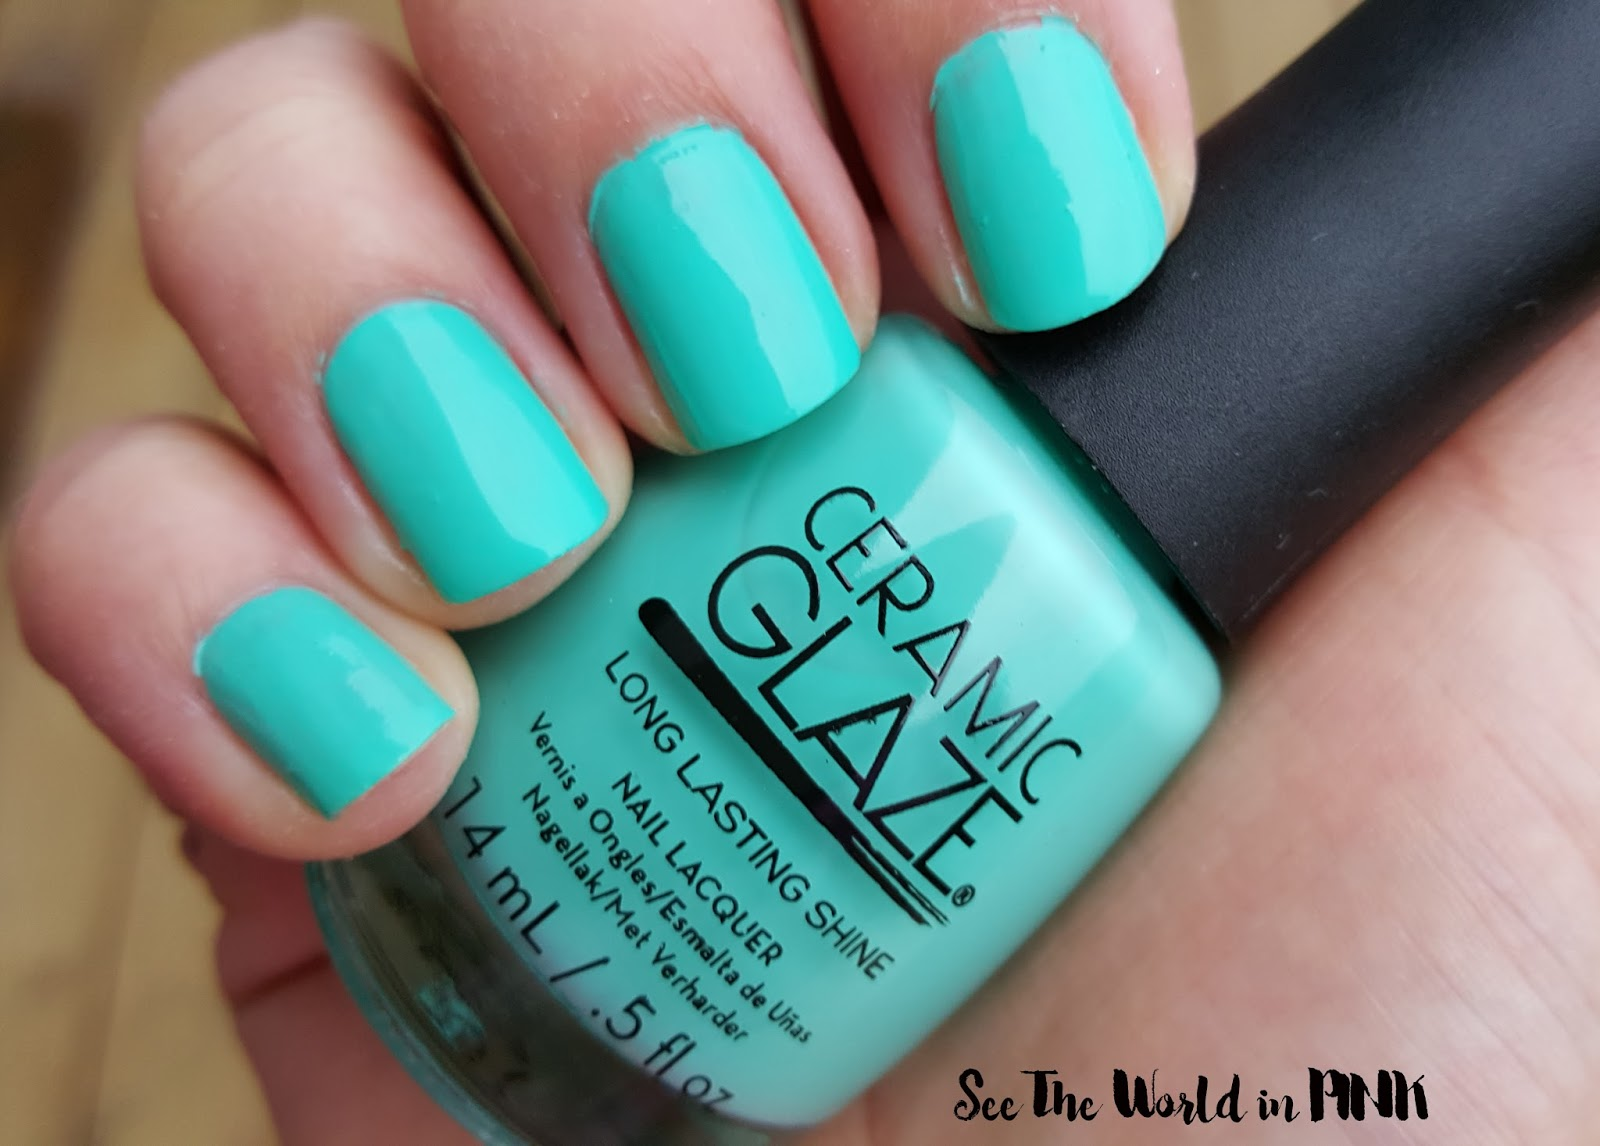 Ceramic Glaze Surf's Up Limited Edition Botanical Oasis Collection Swatches and Reviews